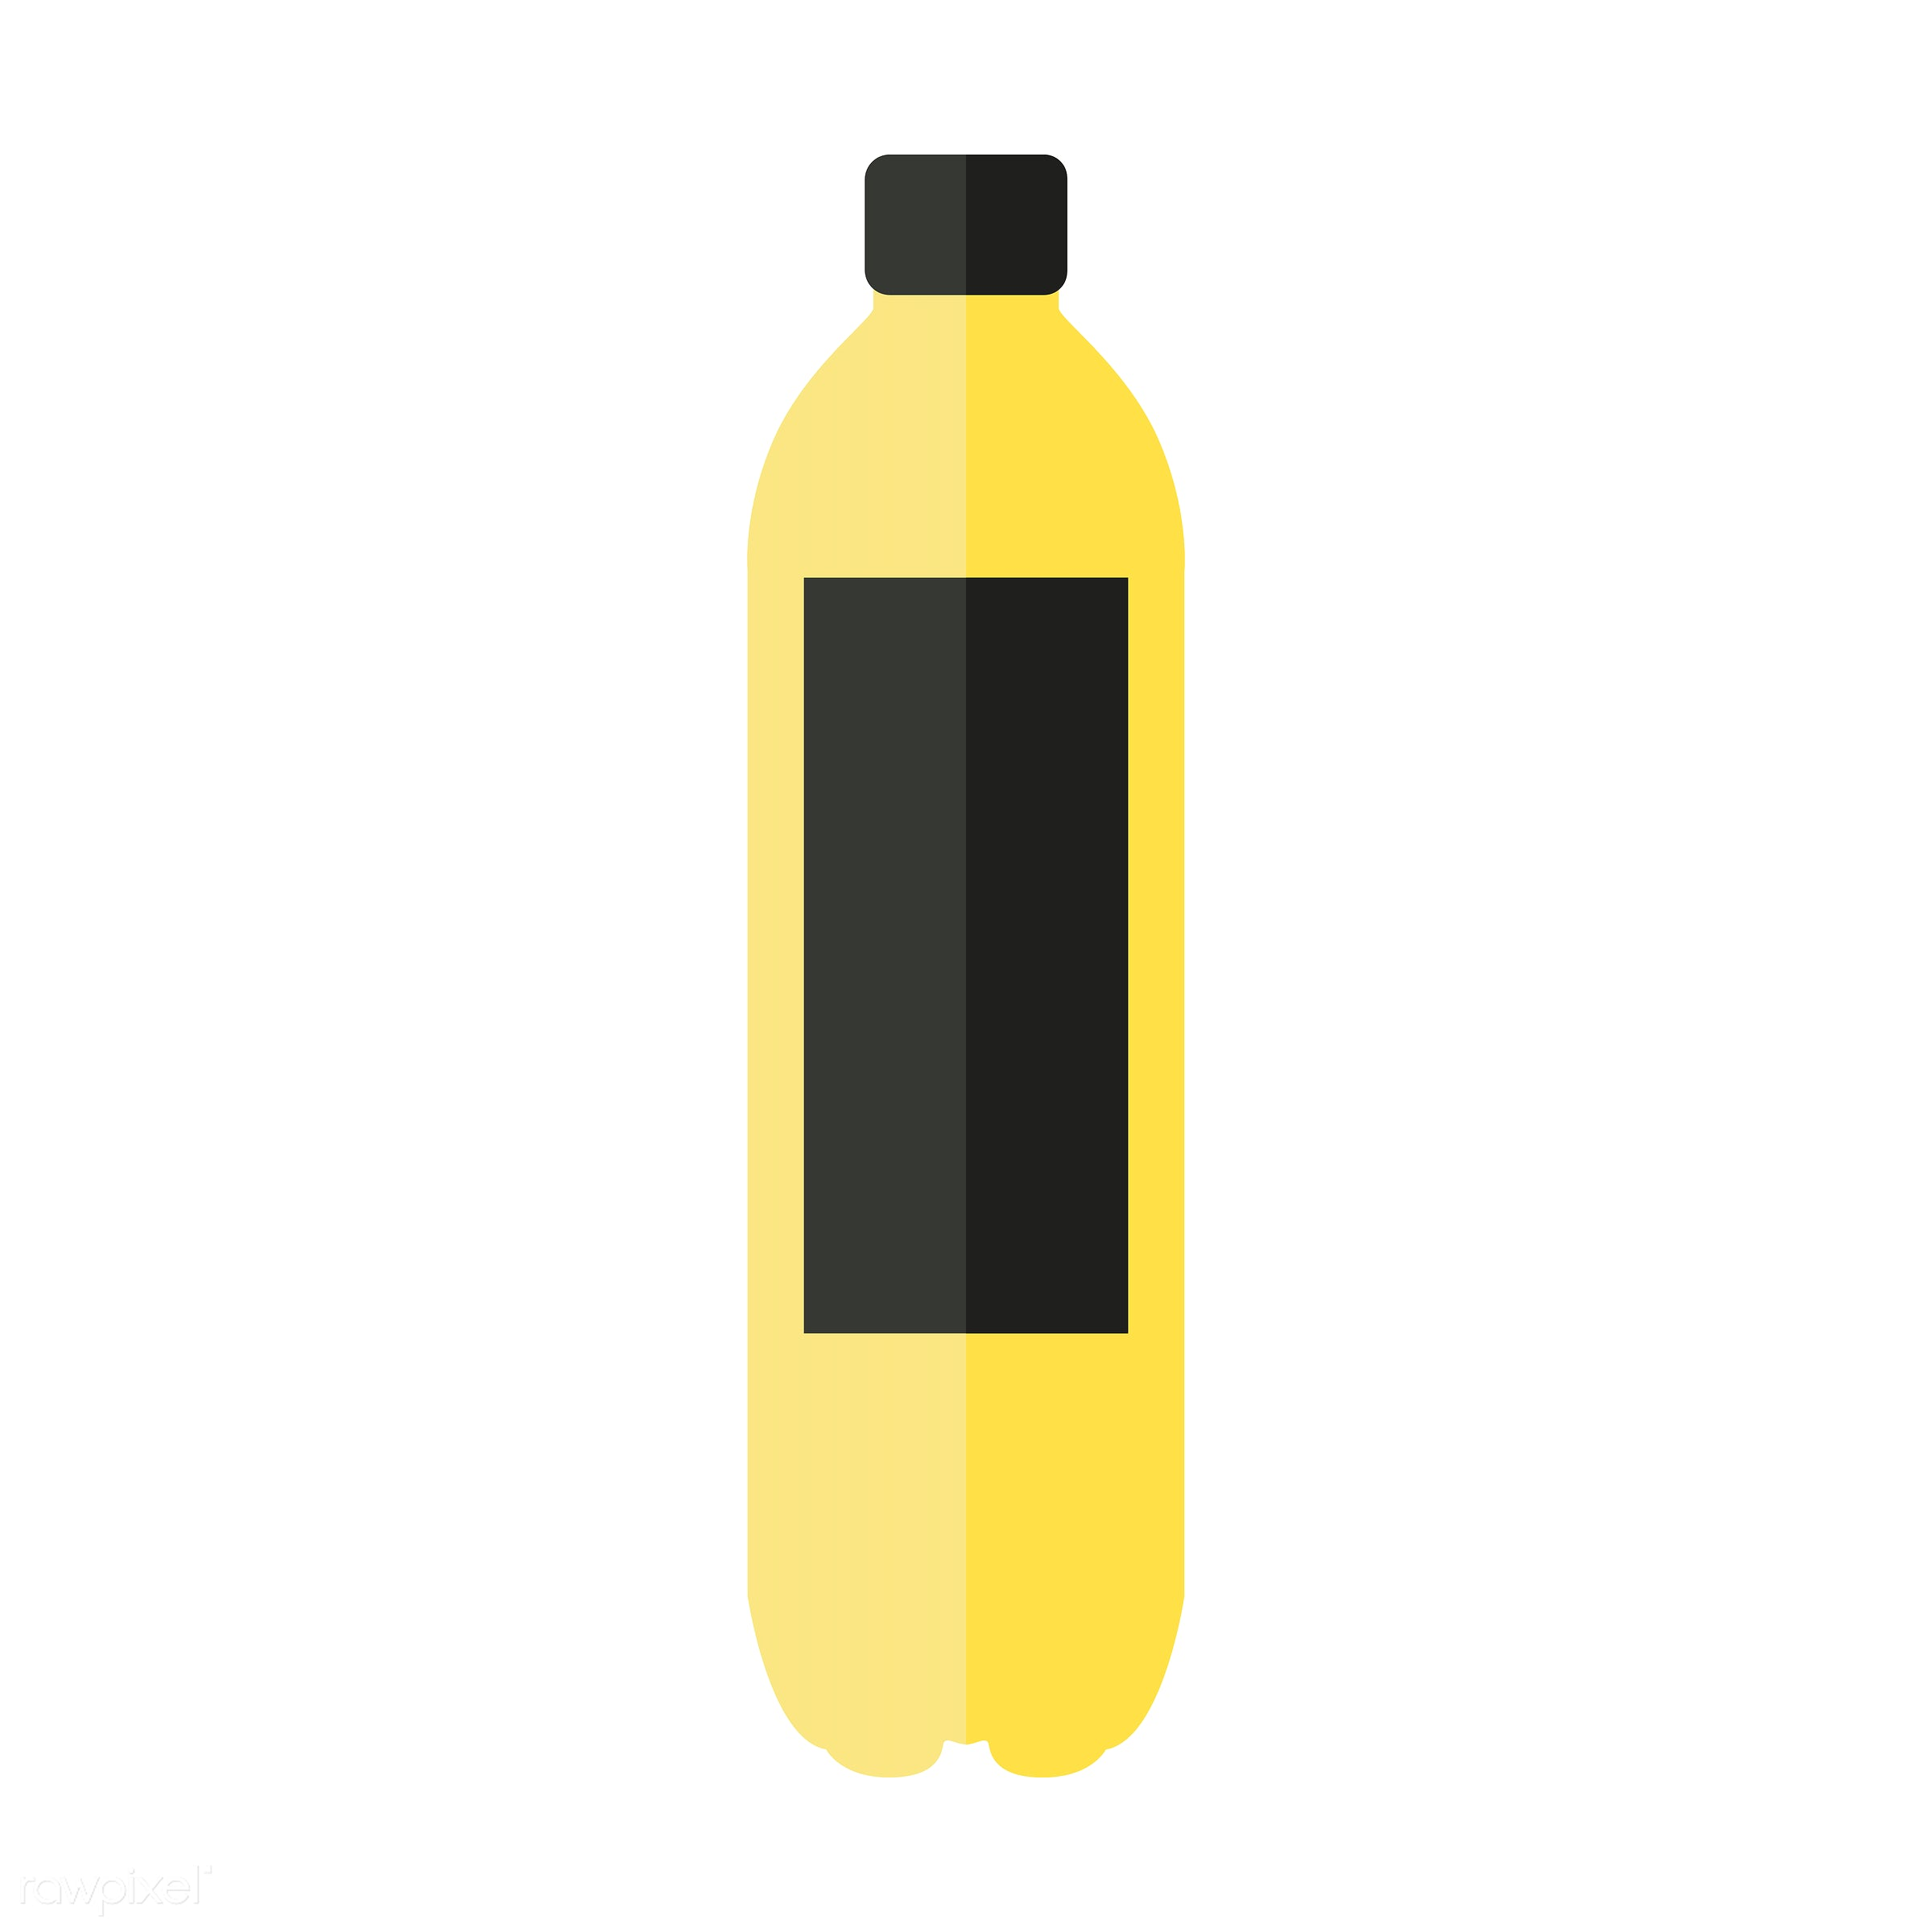 Sports drink vector - vector, graphic, illustration, icon, symbol, colorful, cute, drink, beverage, water, sports drink,...